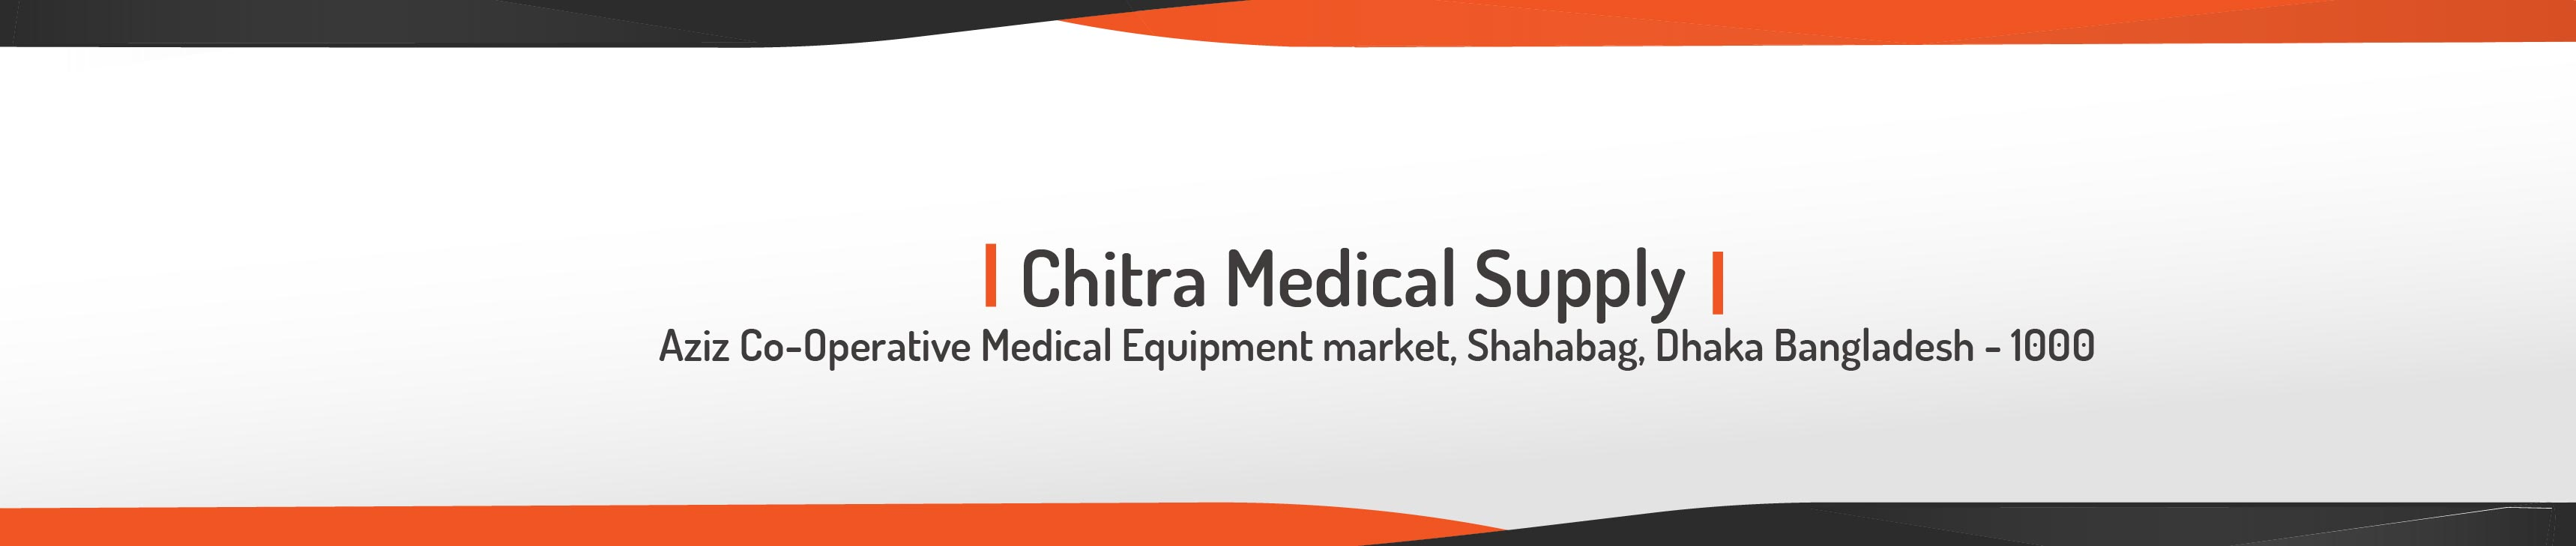 Chitra Medical Supply